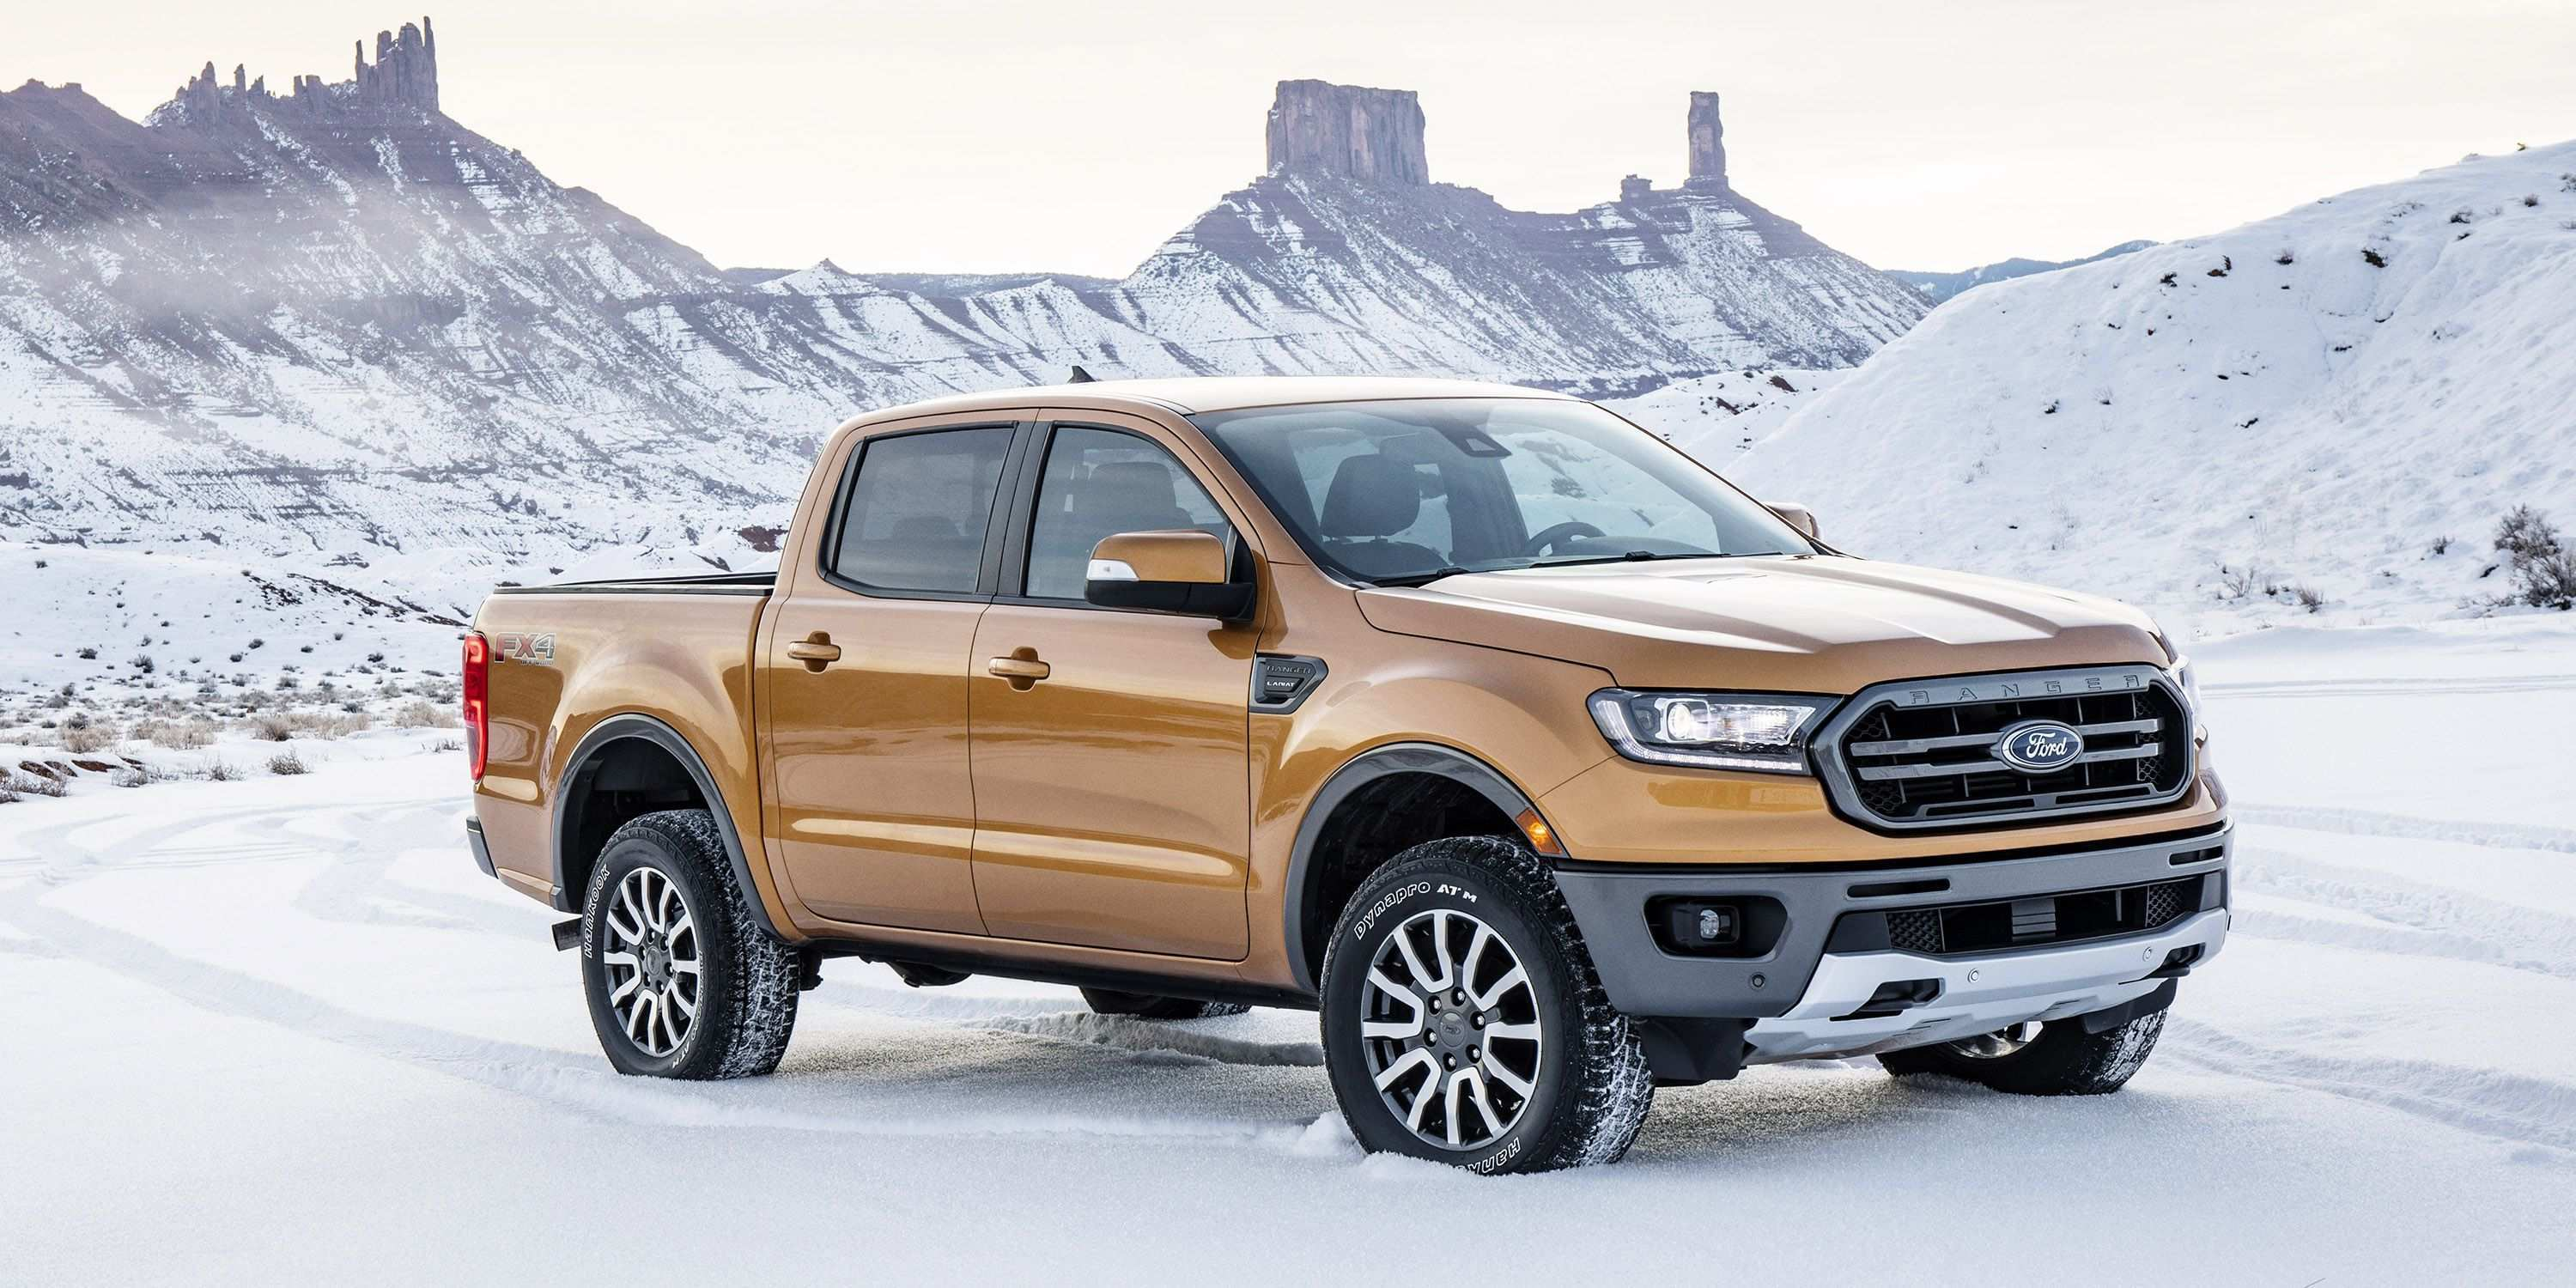 77 Best Review 2020 Ford Ranger Usa Redesign and Concept with 2020 Ford Ranger Usa